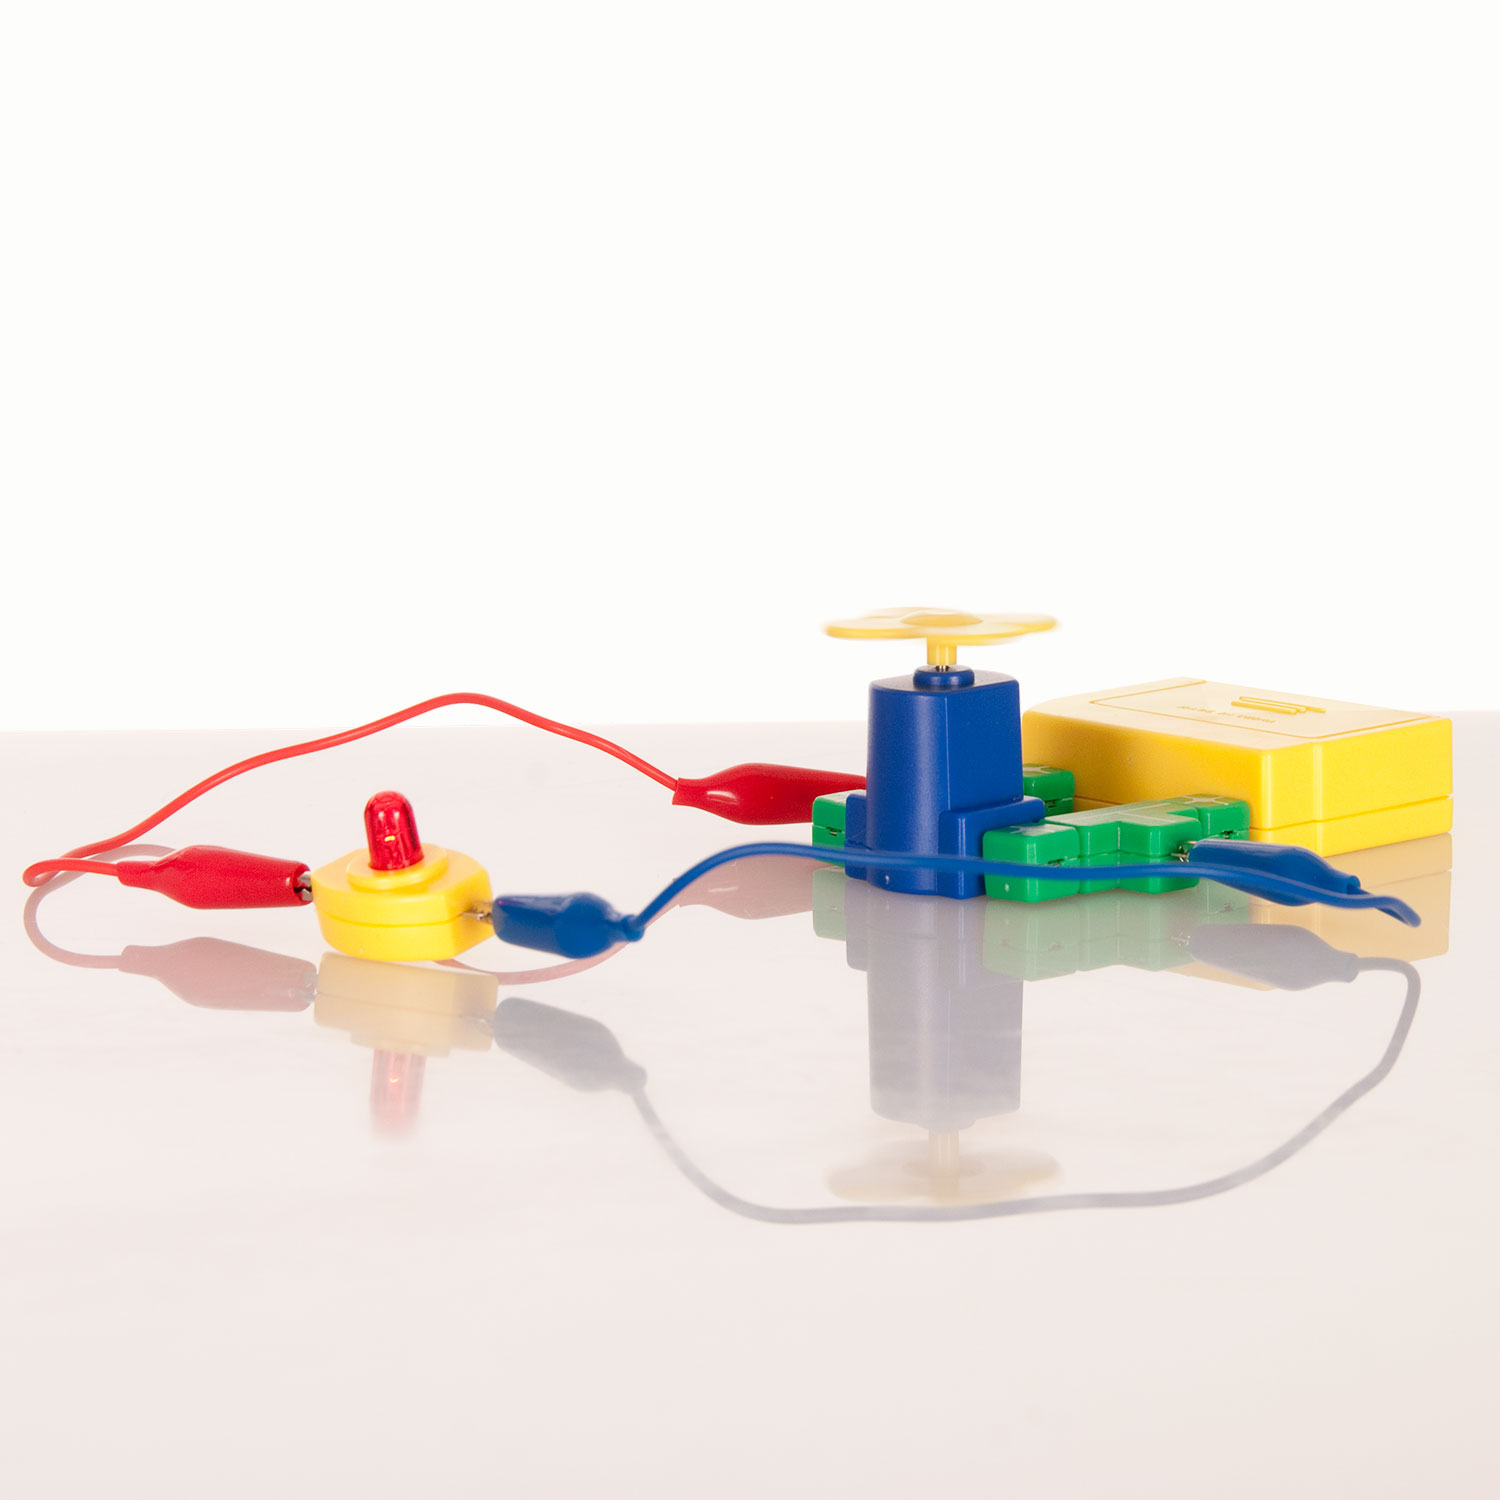 Electricity and Magnet Kit